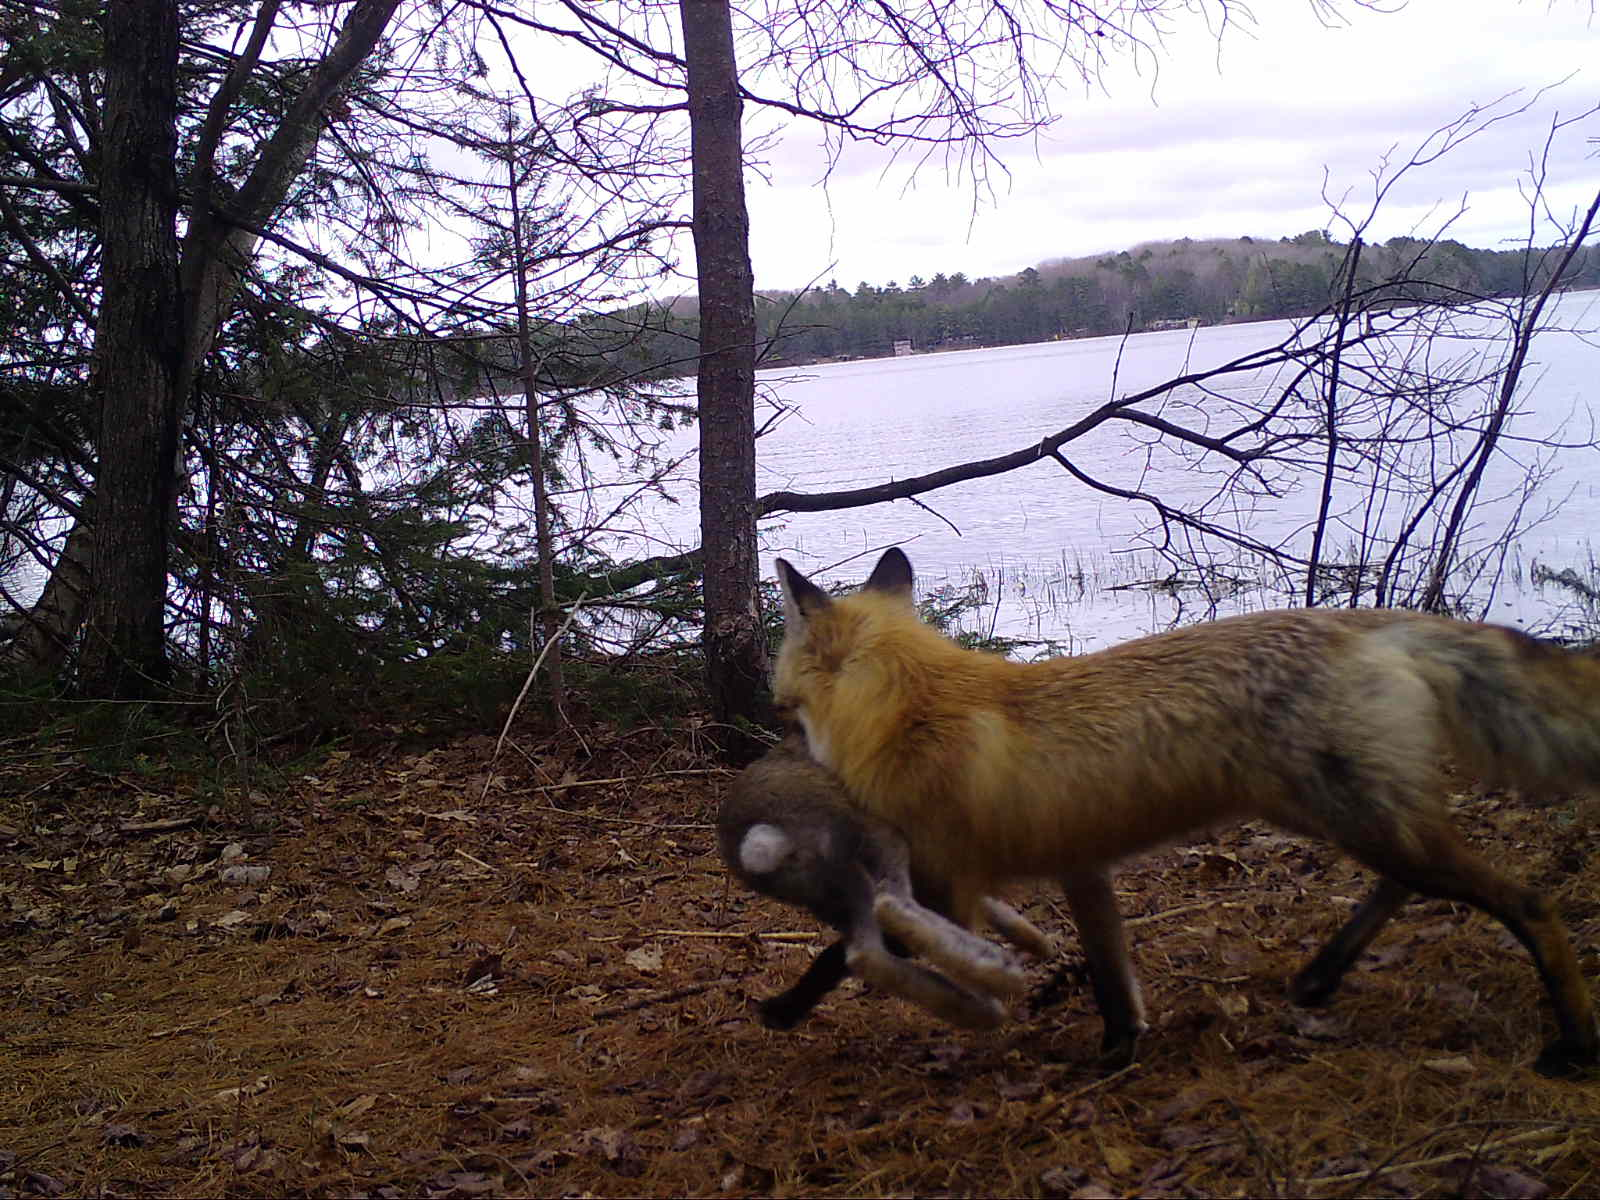 A red fox with a rabbit in its mouth